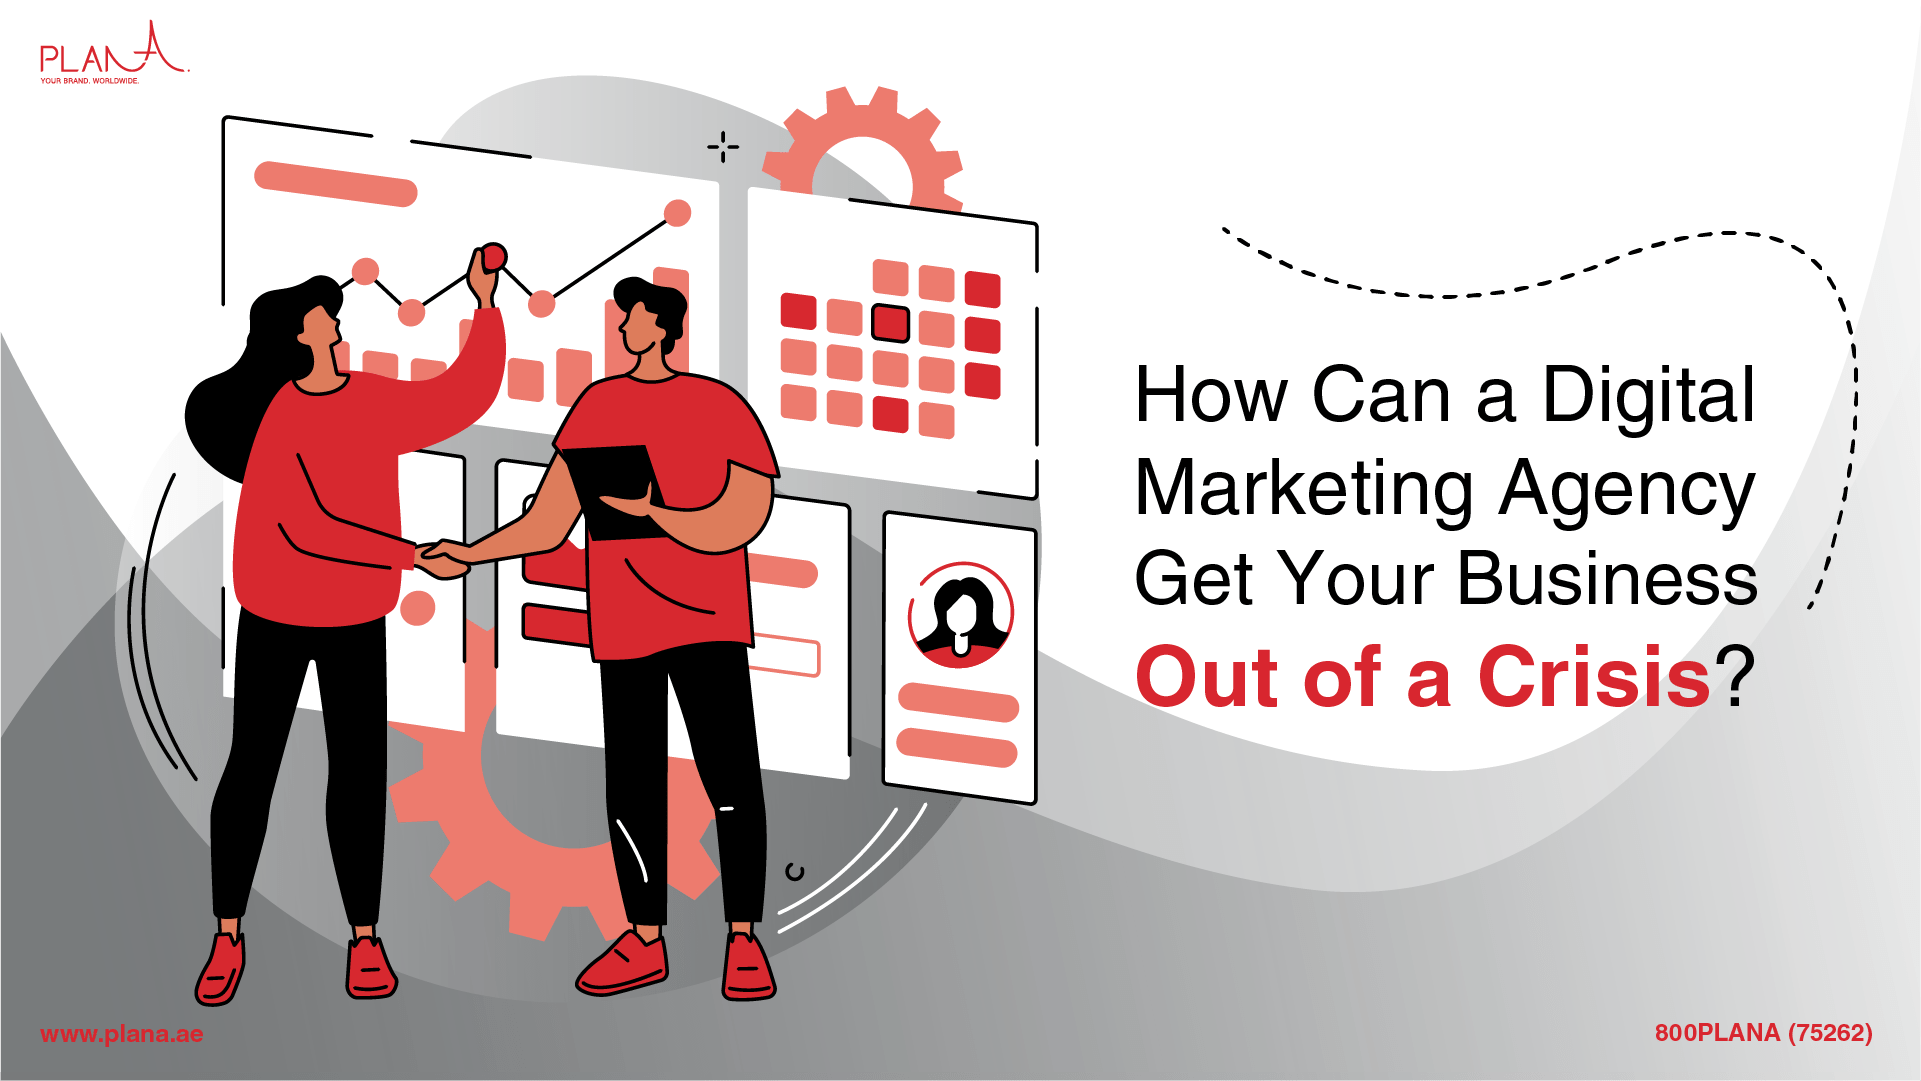 How Can a Digital Marketing Agency Get Your Business Out of a Crisis?